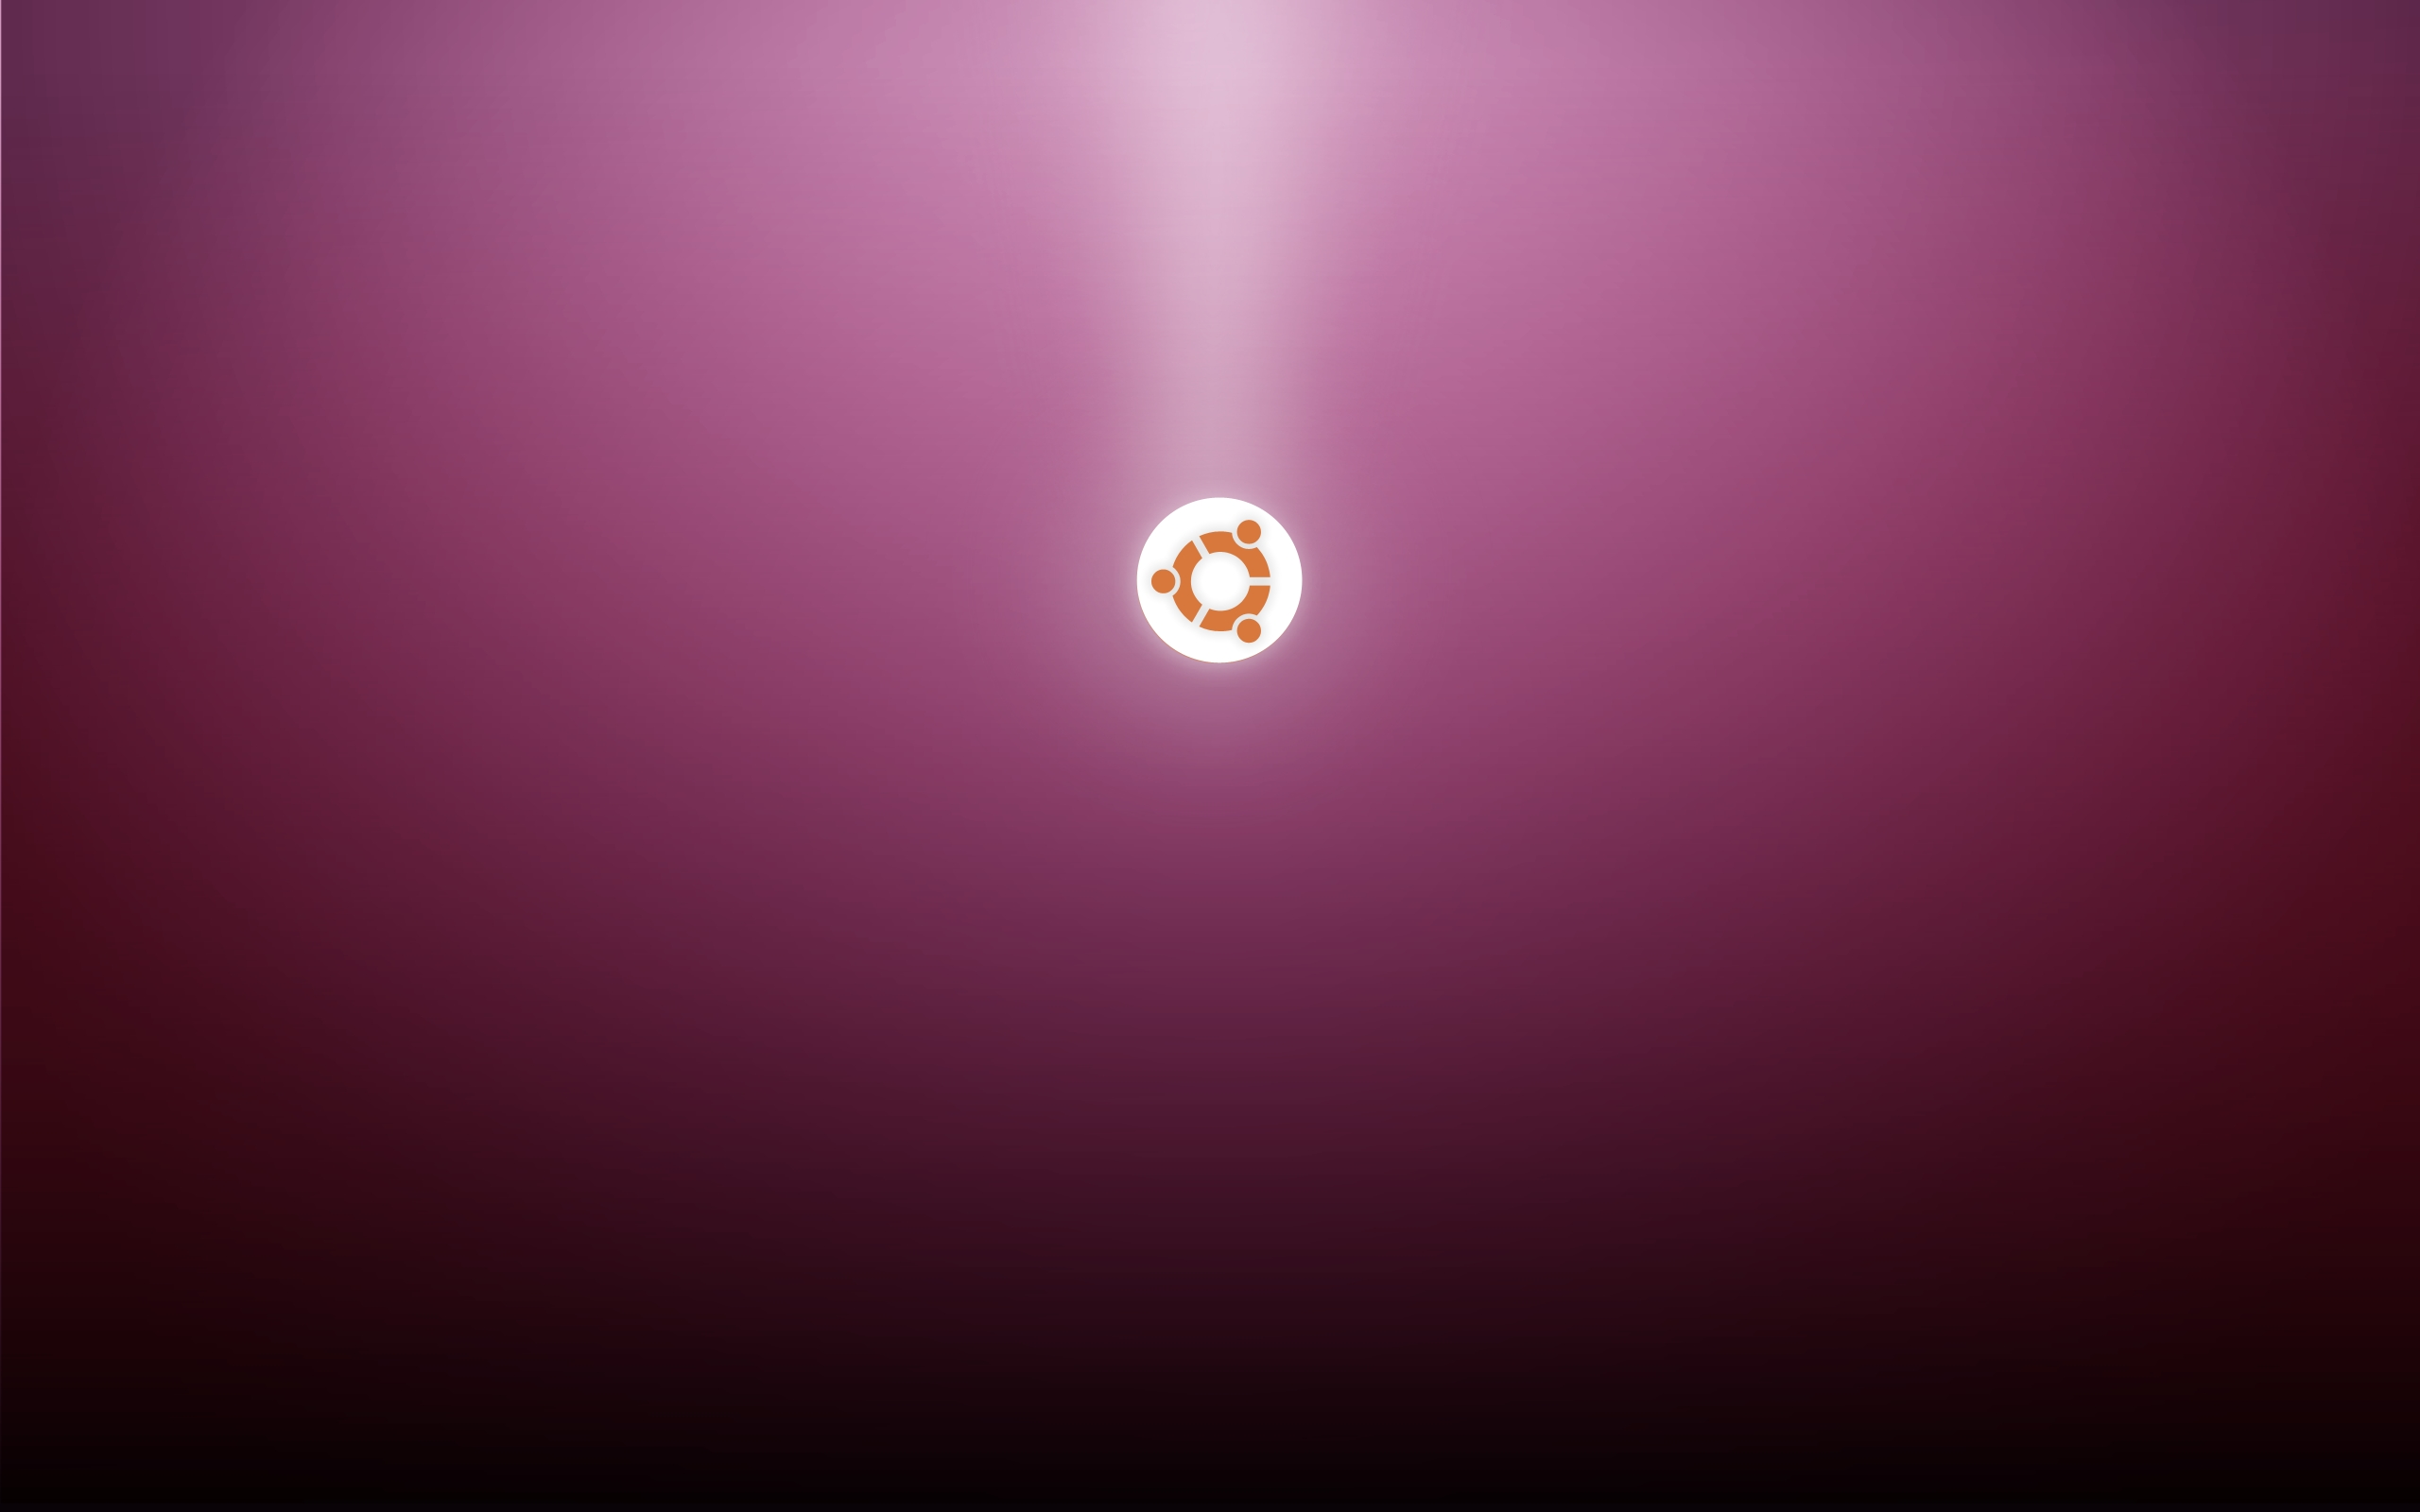 ubuntu background-wallpaper-2560x1600